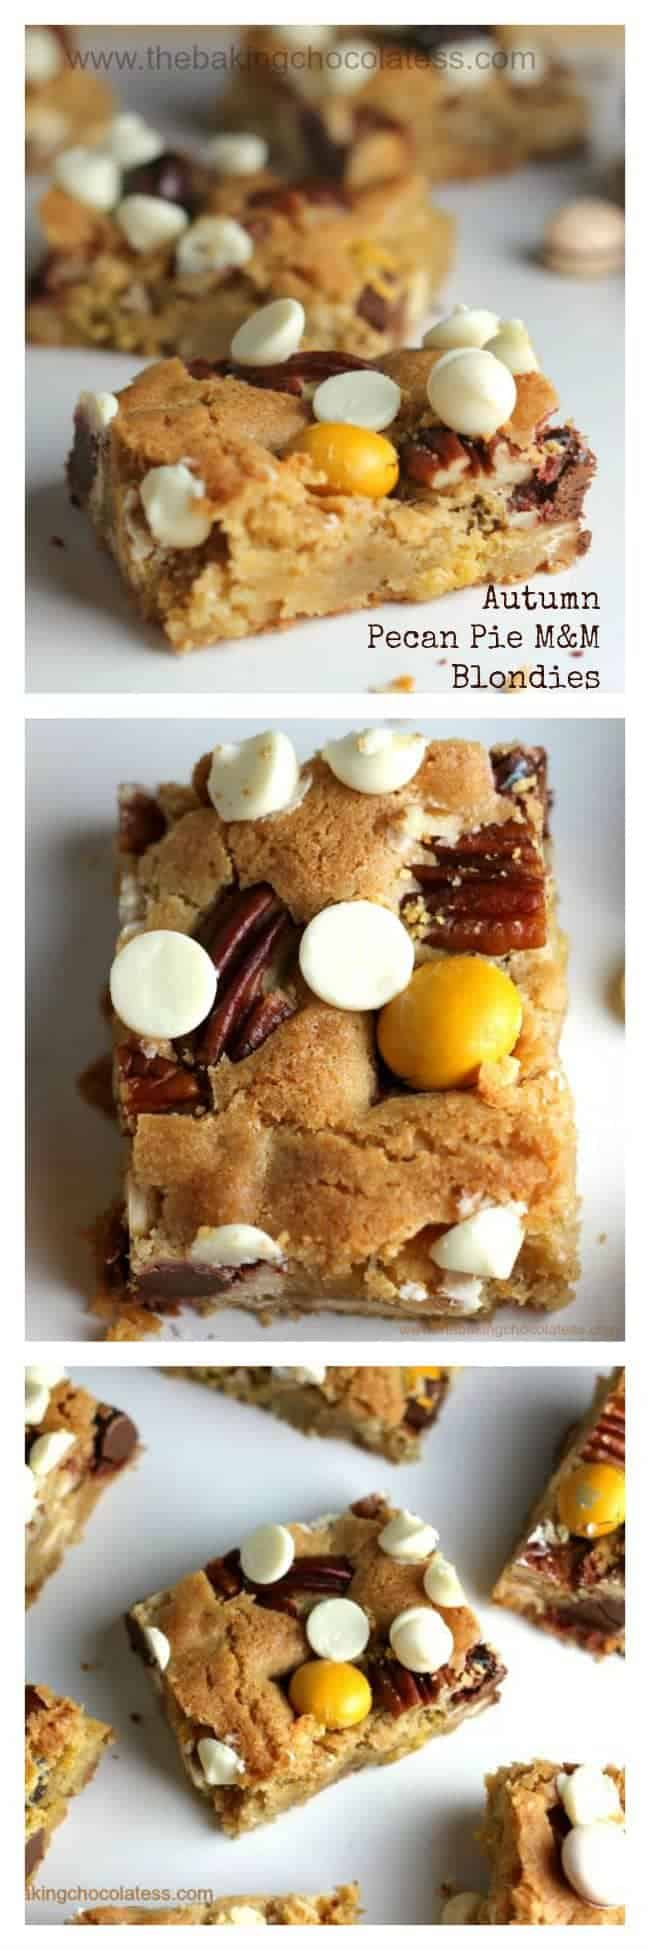 Autumn Pecan Pie M&M Blondies